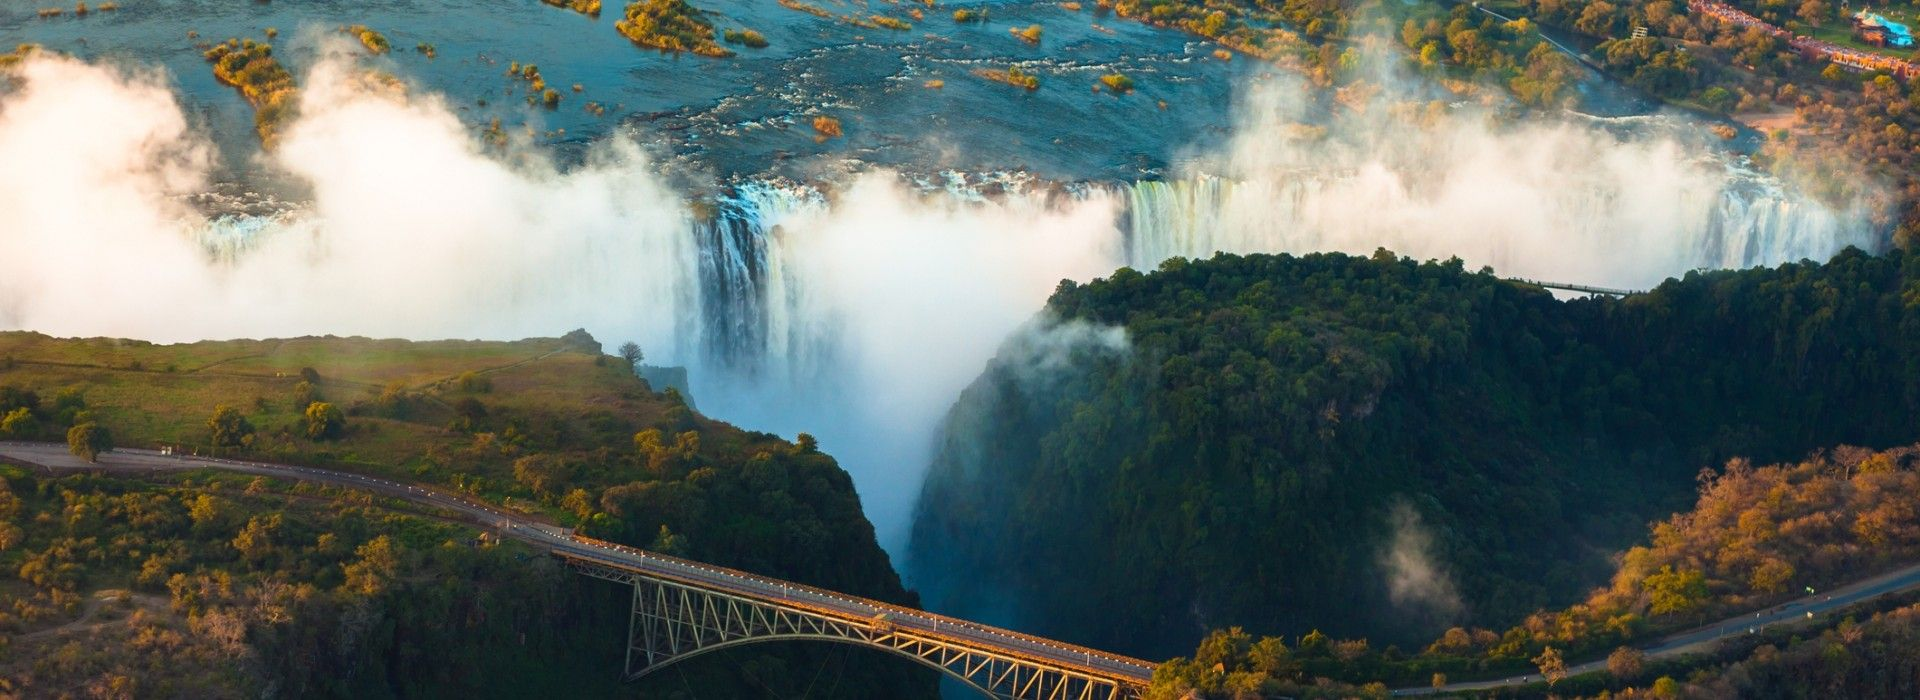 Adventure and sport Tours in Zambia